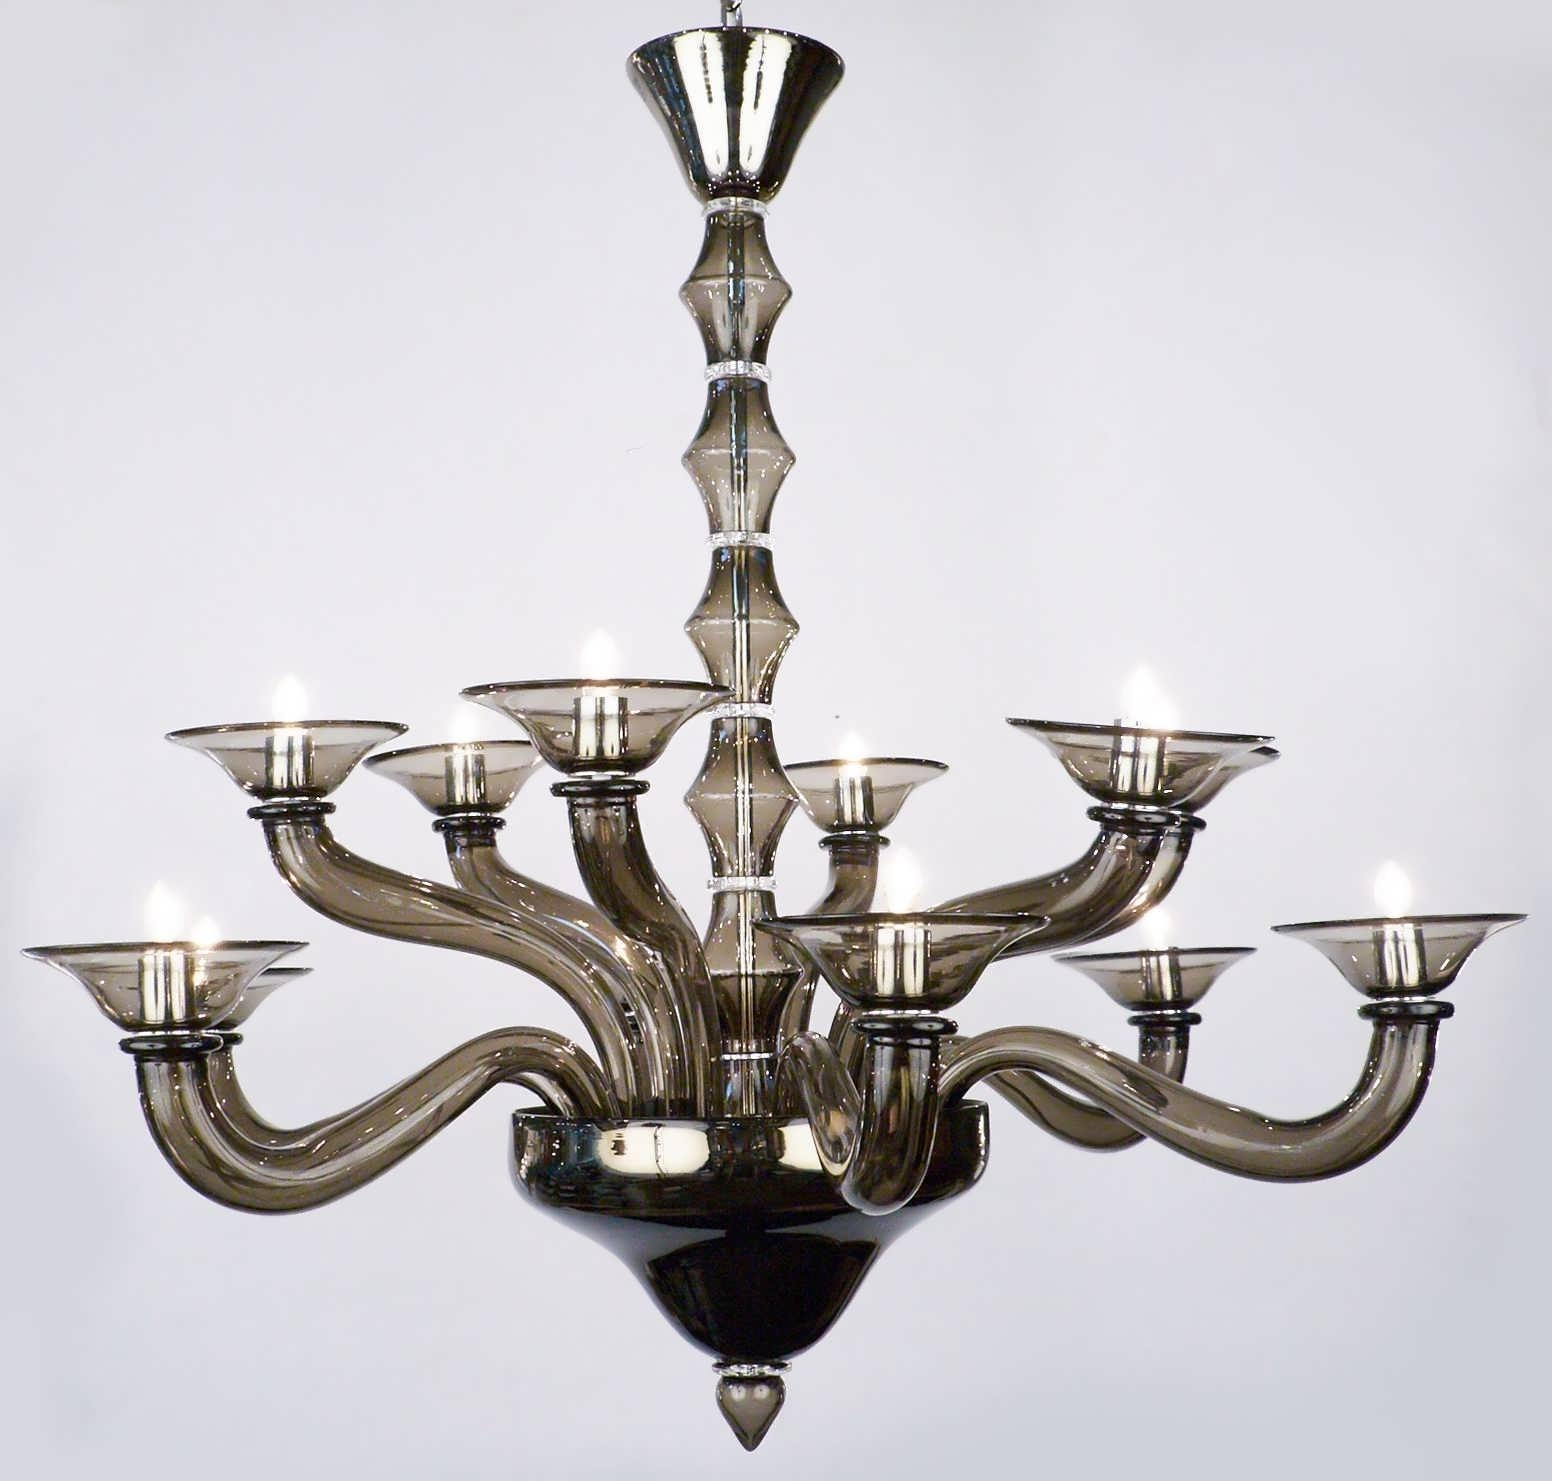 Latest Chandeliers Design : Magnificent Blown Glass Chandelier Drum Intended For Modern Italian Chandeliers (View 9 of 20)